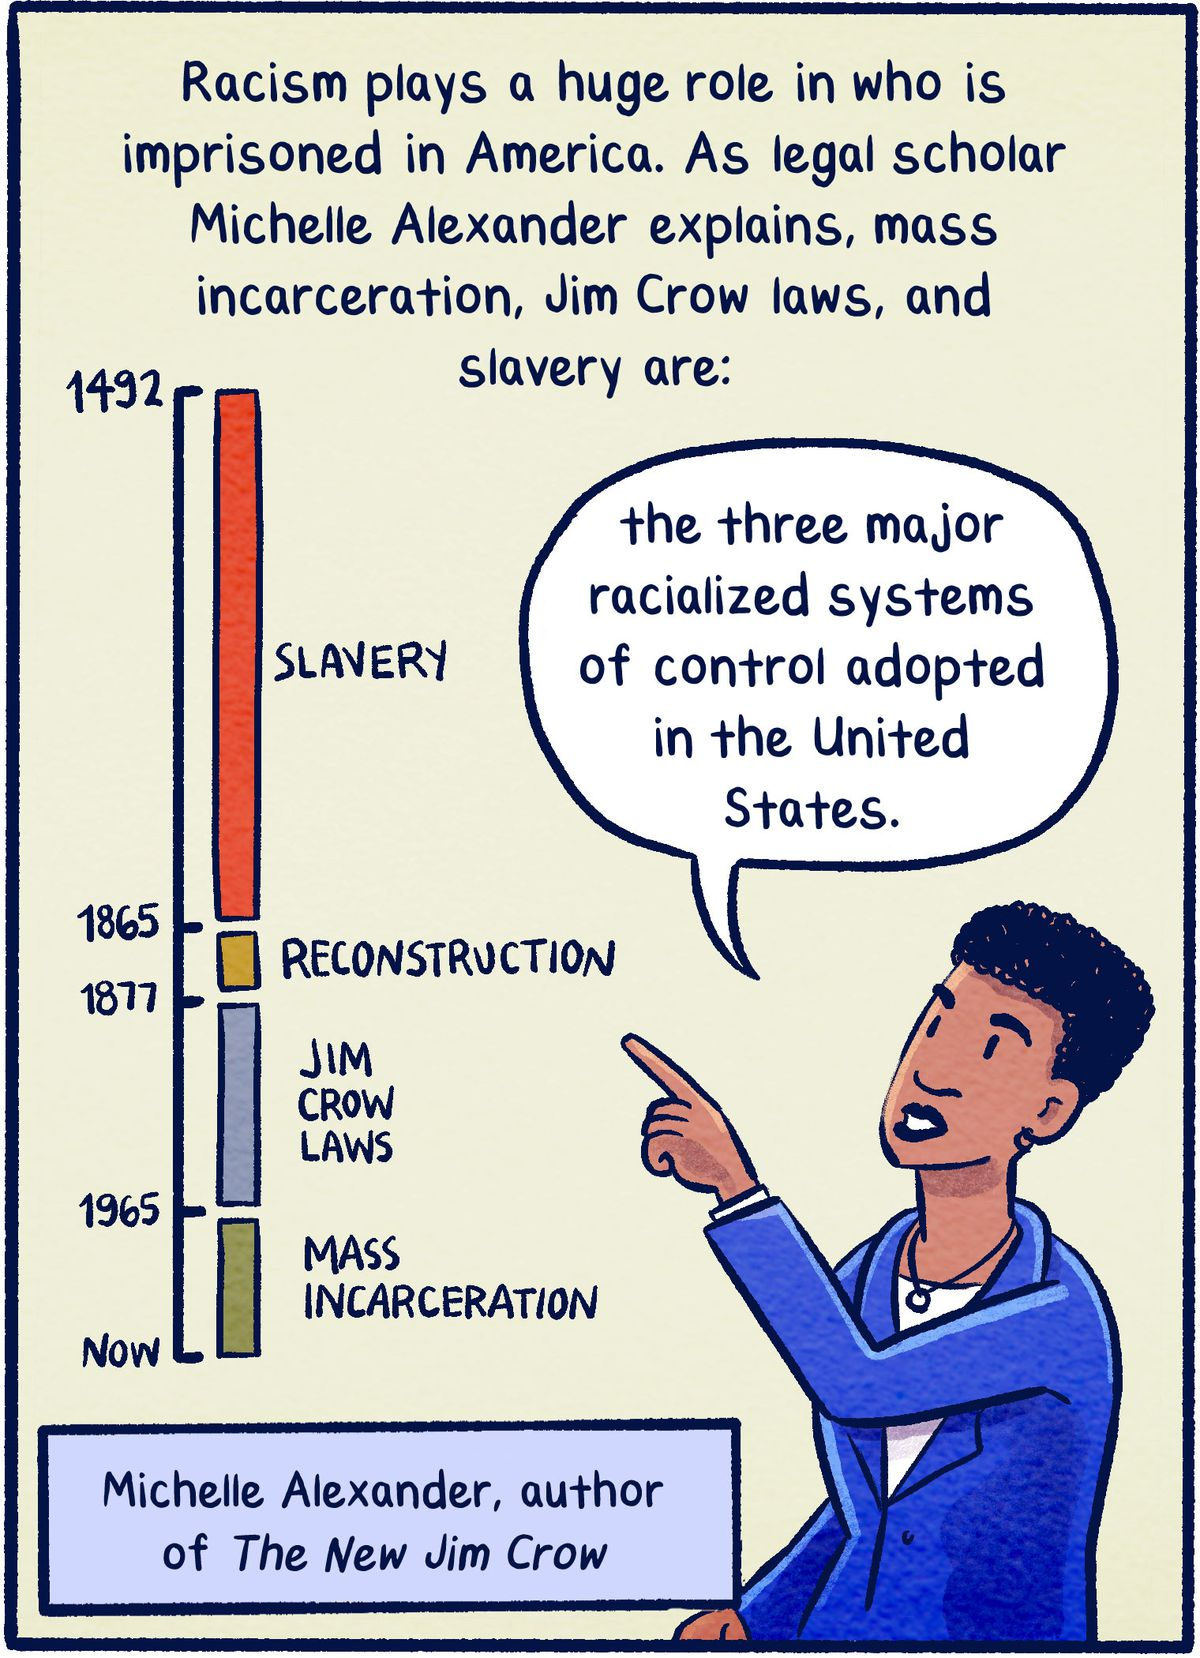 """Racism plays a huge role in who is imprisoned in America. As legal scholar Michelle Alexander explains, mass incarceration, Jim Crow laws, and slavery are """"the three major racialized systems of control adopted in the United States."""""""